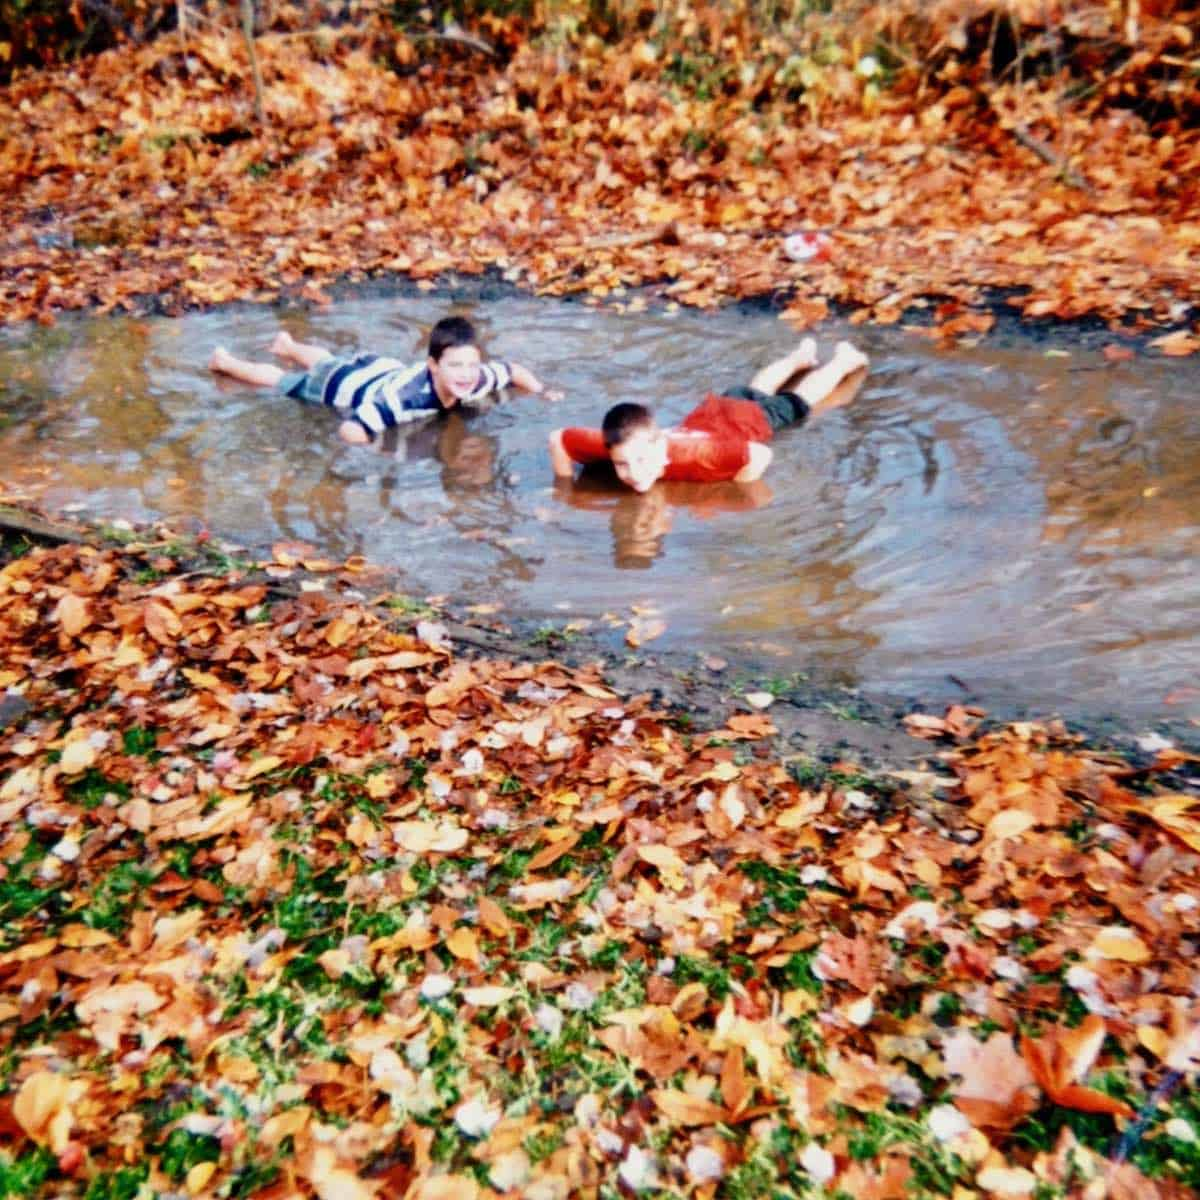 the boys playing in mud puddle